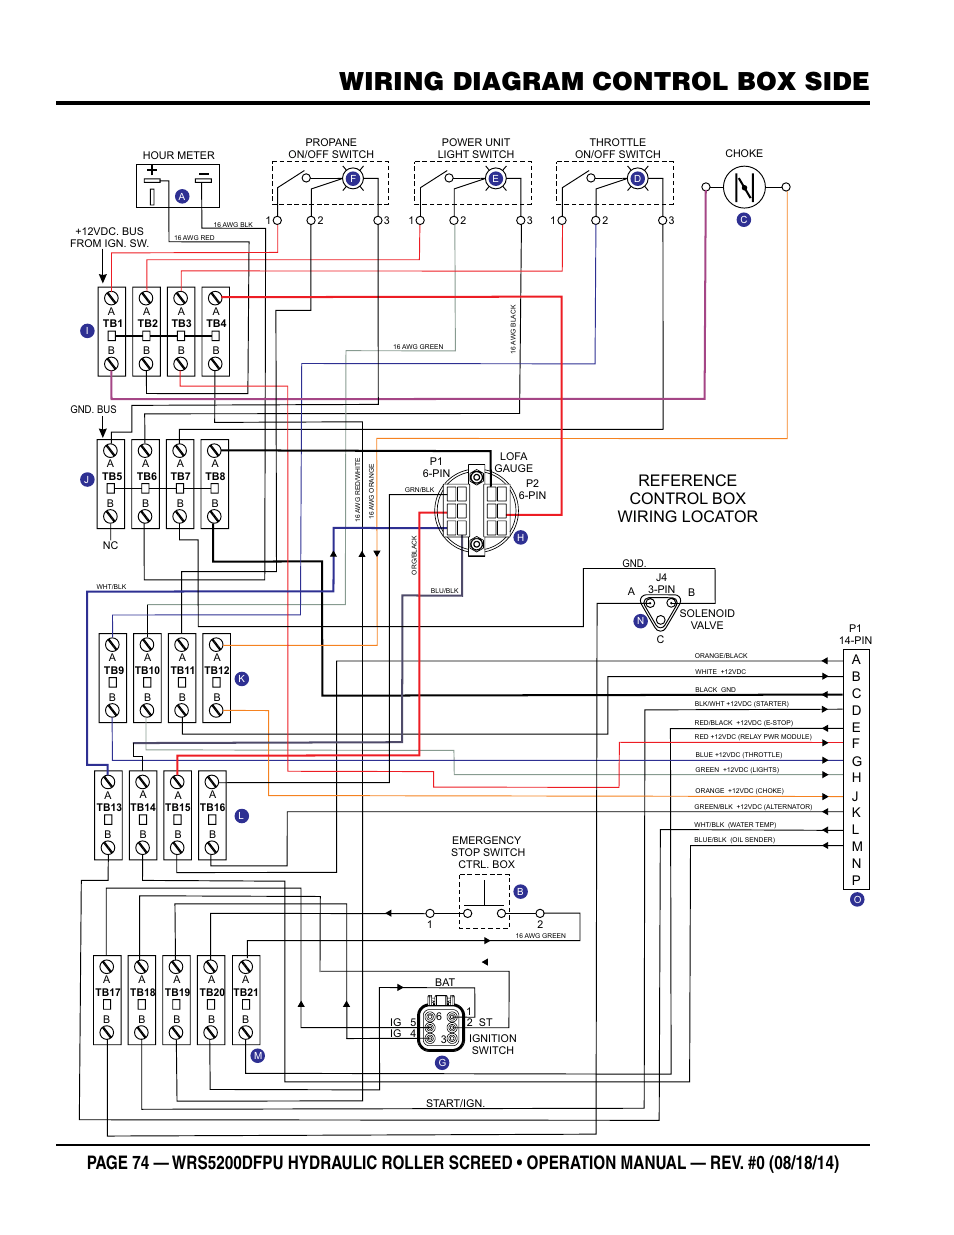 medium resolution of 14 pin wire diagram kubota all kind of wiring diagrams u2022 cummins wiring diagrams kubota